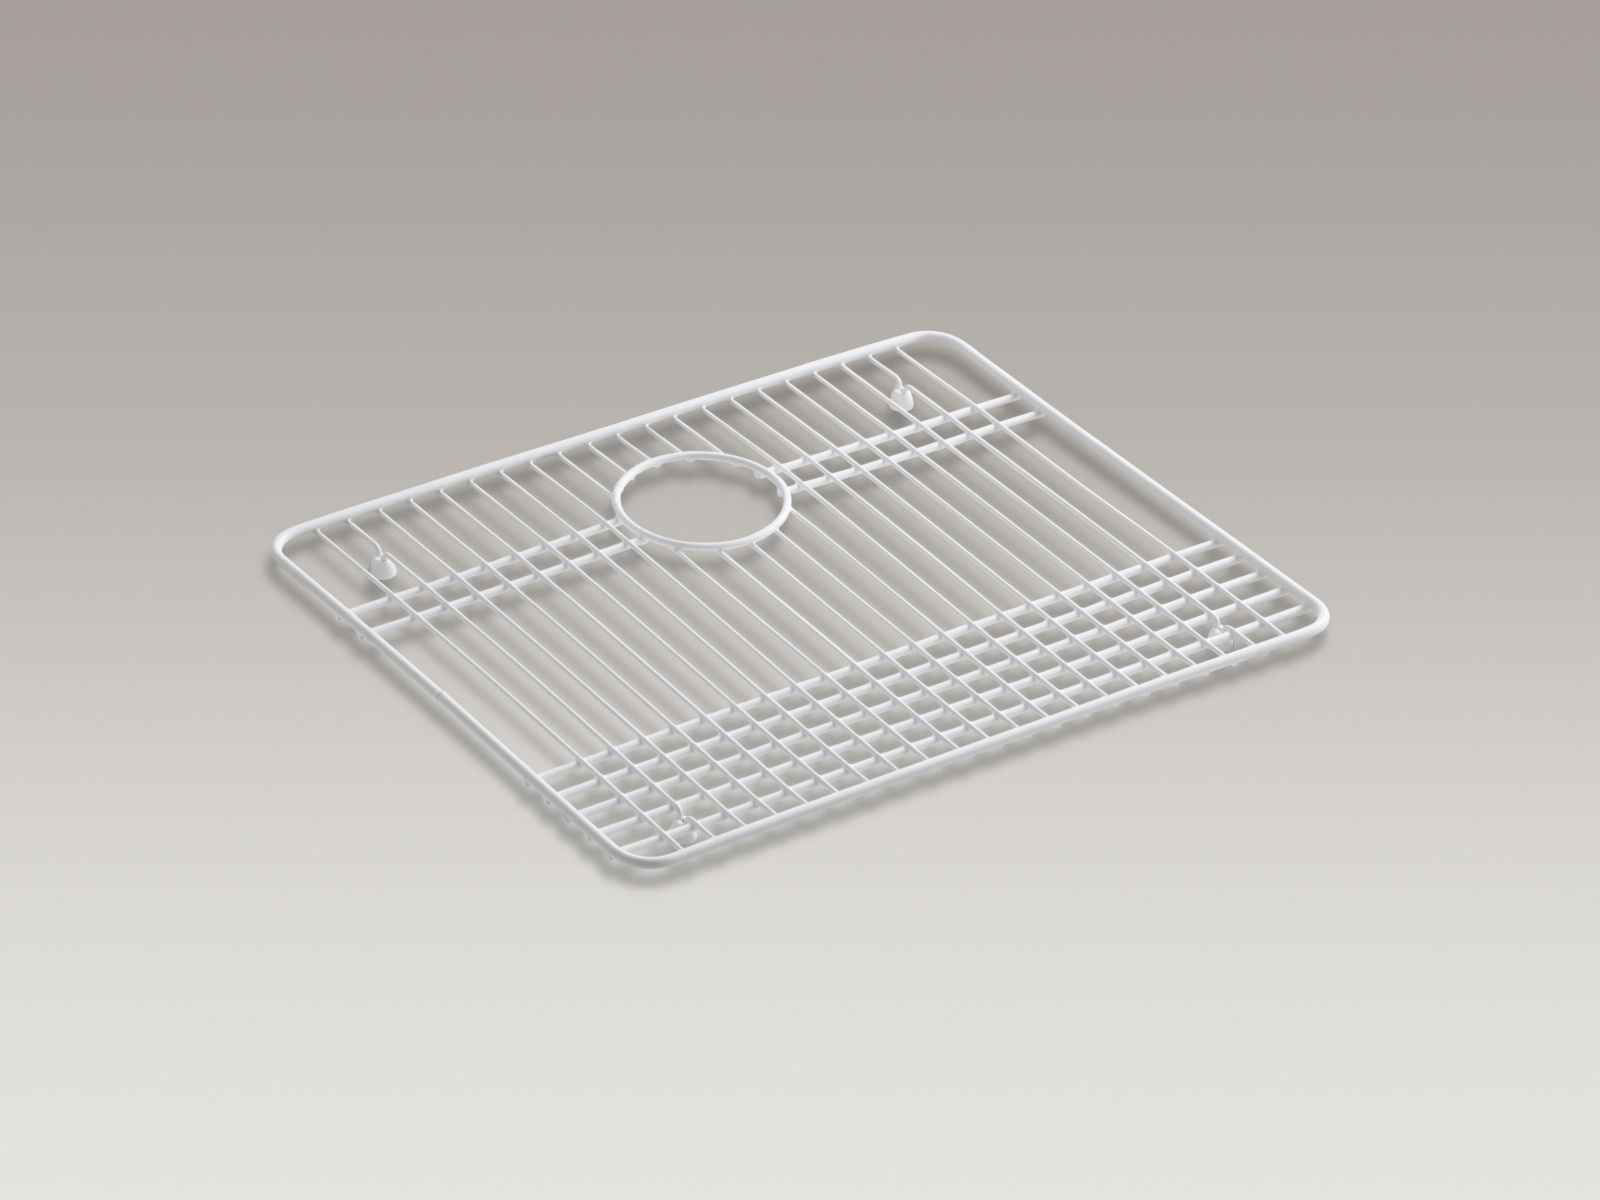 "Kohler Gilford™ K-6013-ST Vinyl coated steel sink rack, 16-1/2"" x 20-1/8"" Stainless Steel"